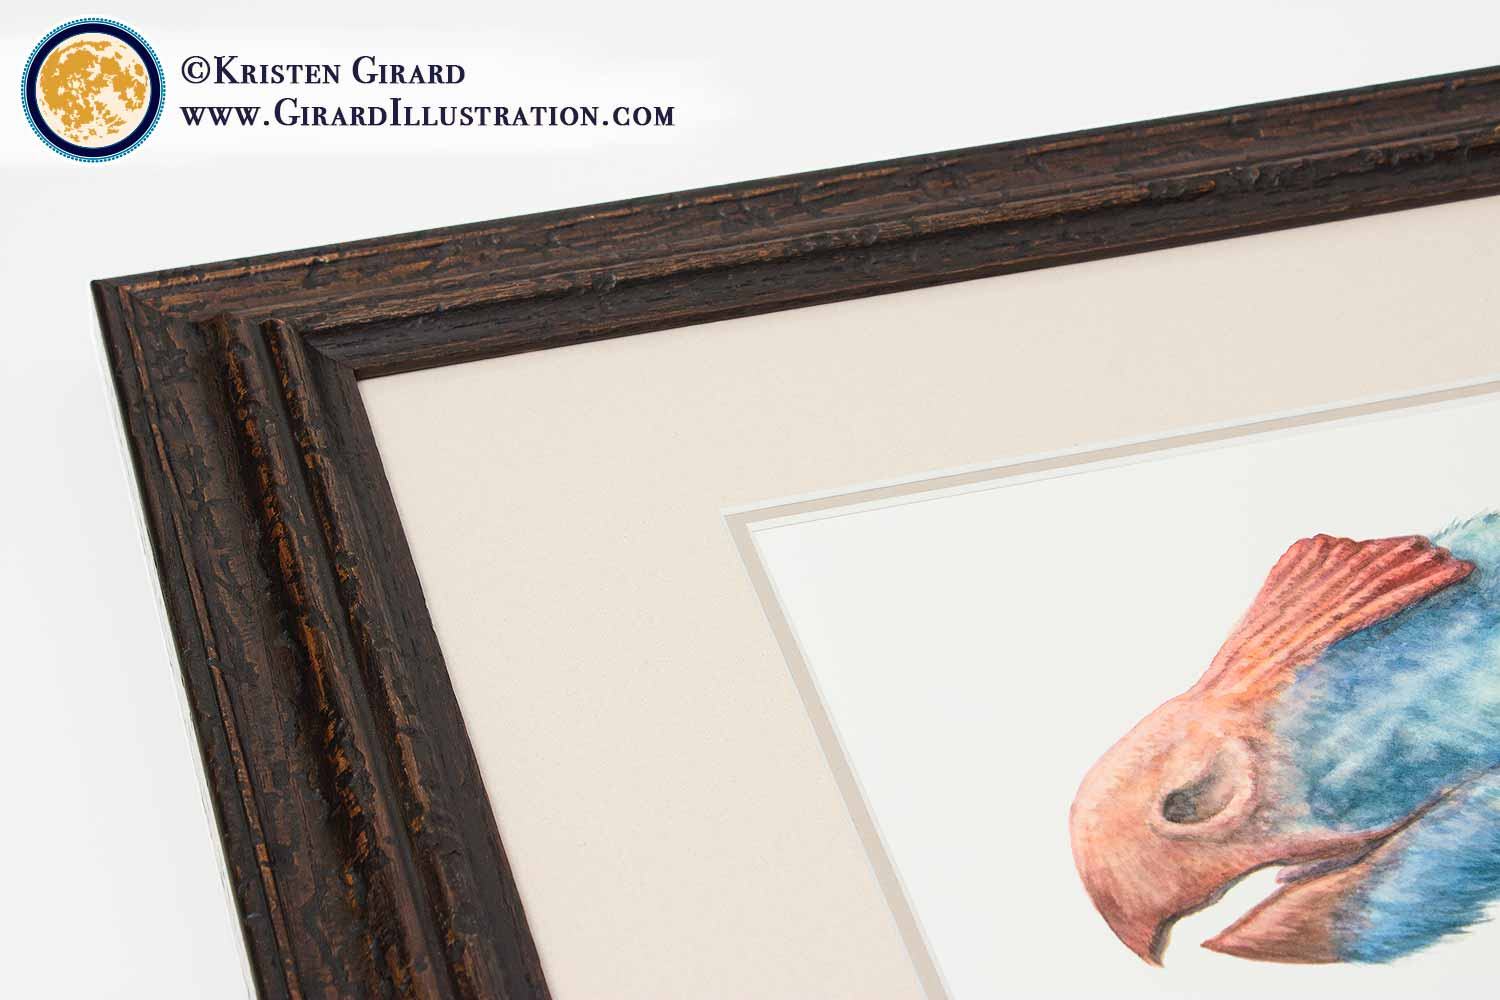 To make sure your framed dinosaur art print looks amazing for a lifetime, we took care of al the details for you.  Gorgeous frames hand crafted  with an eye for strength and beauty. Matts both set the artwork off and protect it. Glazing that has little to no glare under most lighting conditions....you deserve the best, so we only do the best.  To find out more about our artist chosen framing click here.